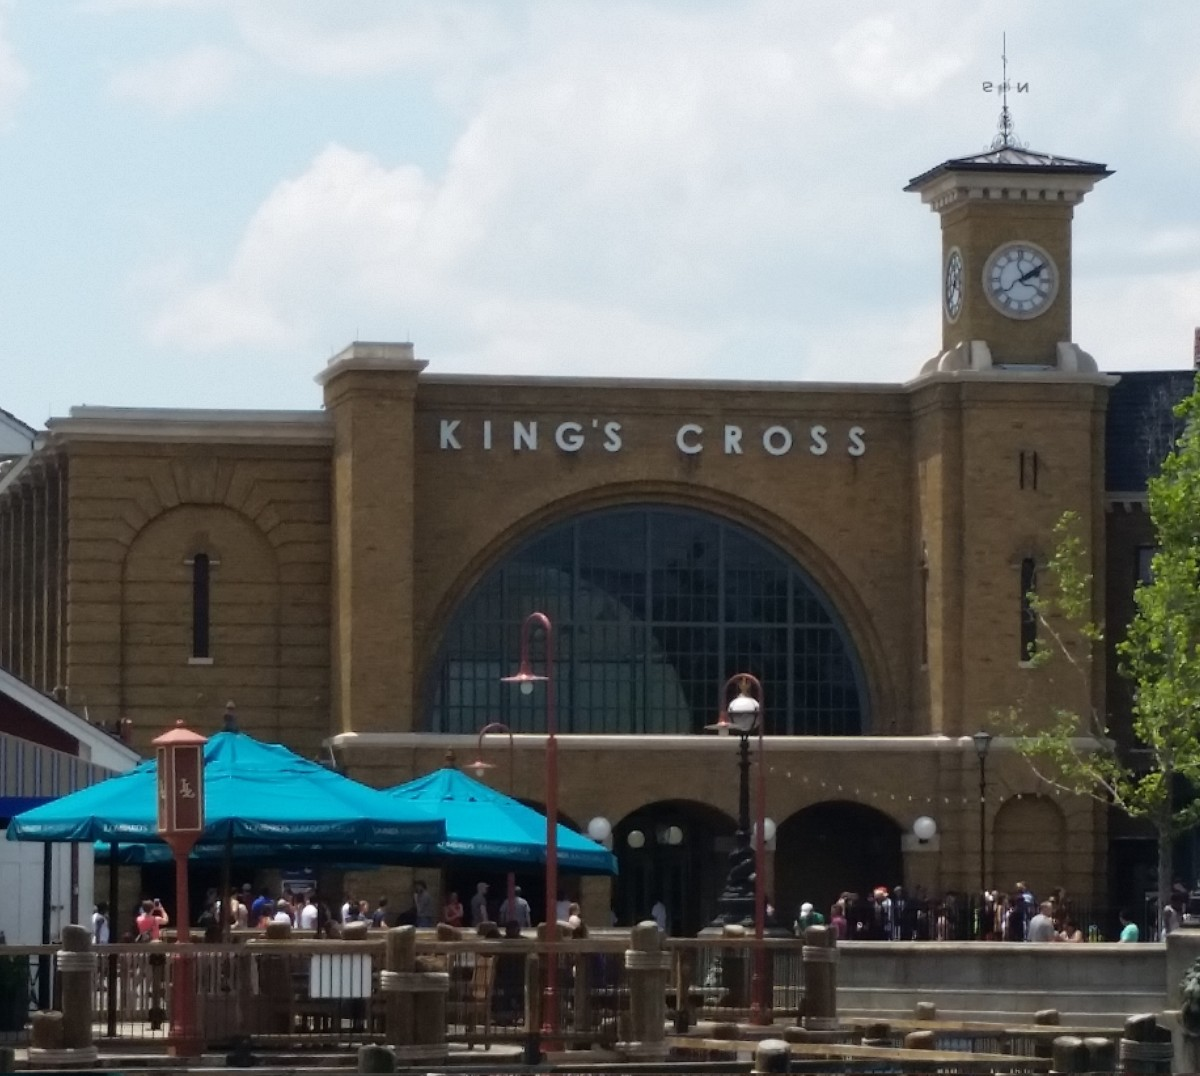 Kings Cross at the Wizarding World of Harry Potter